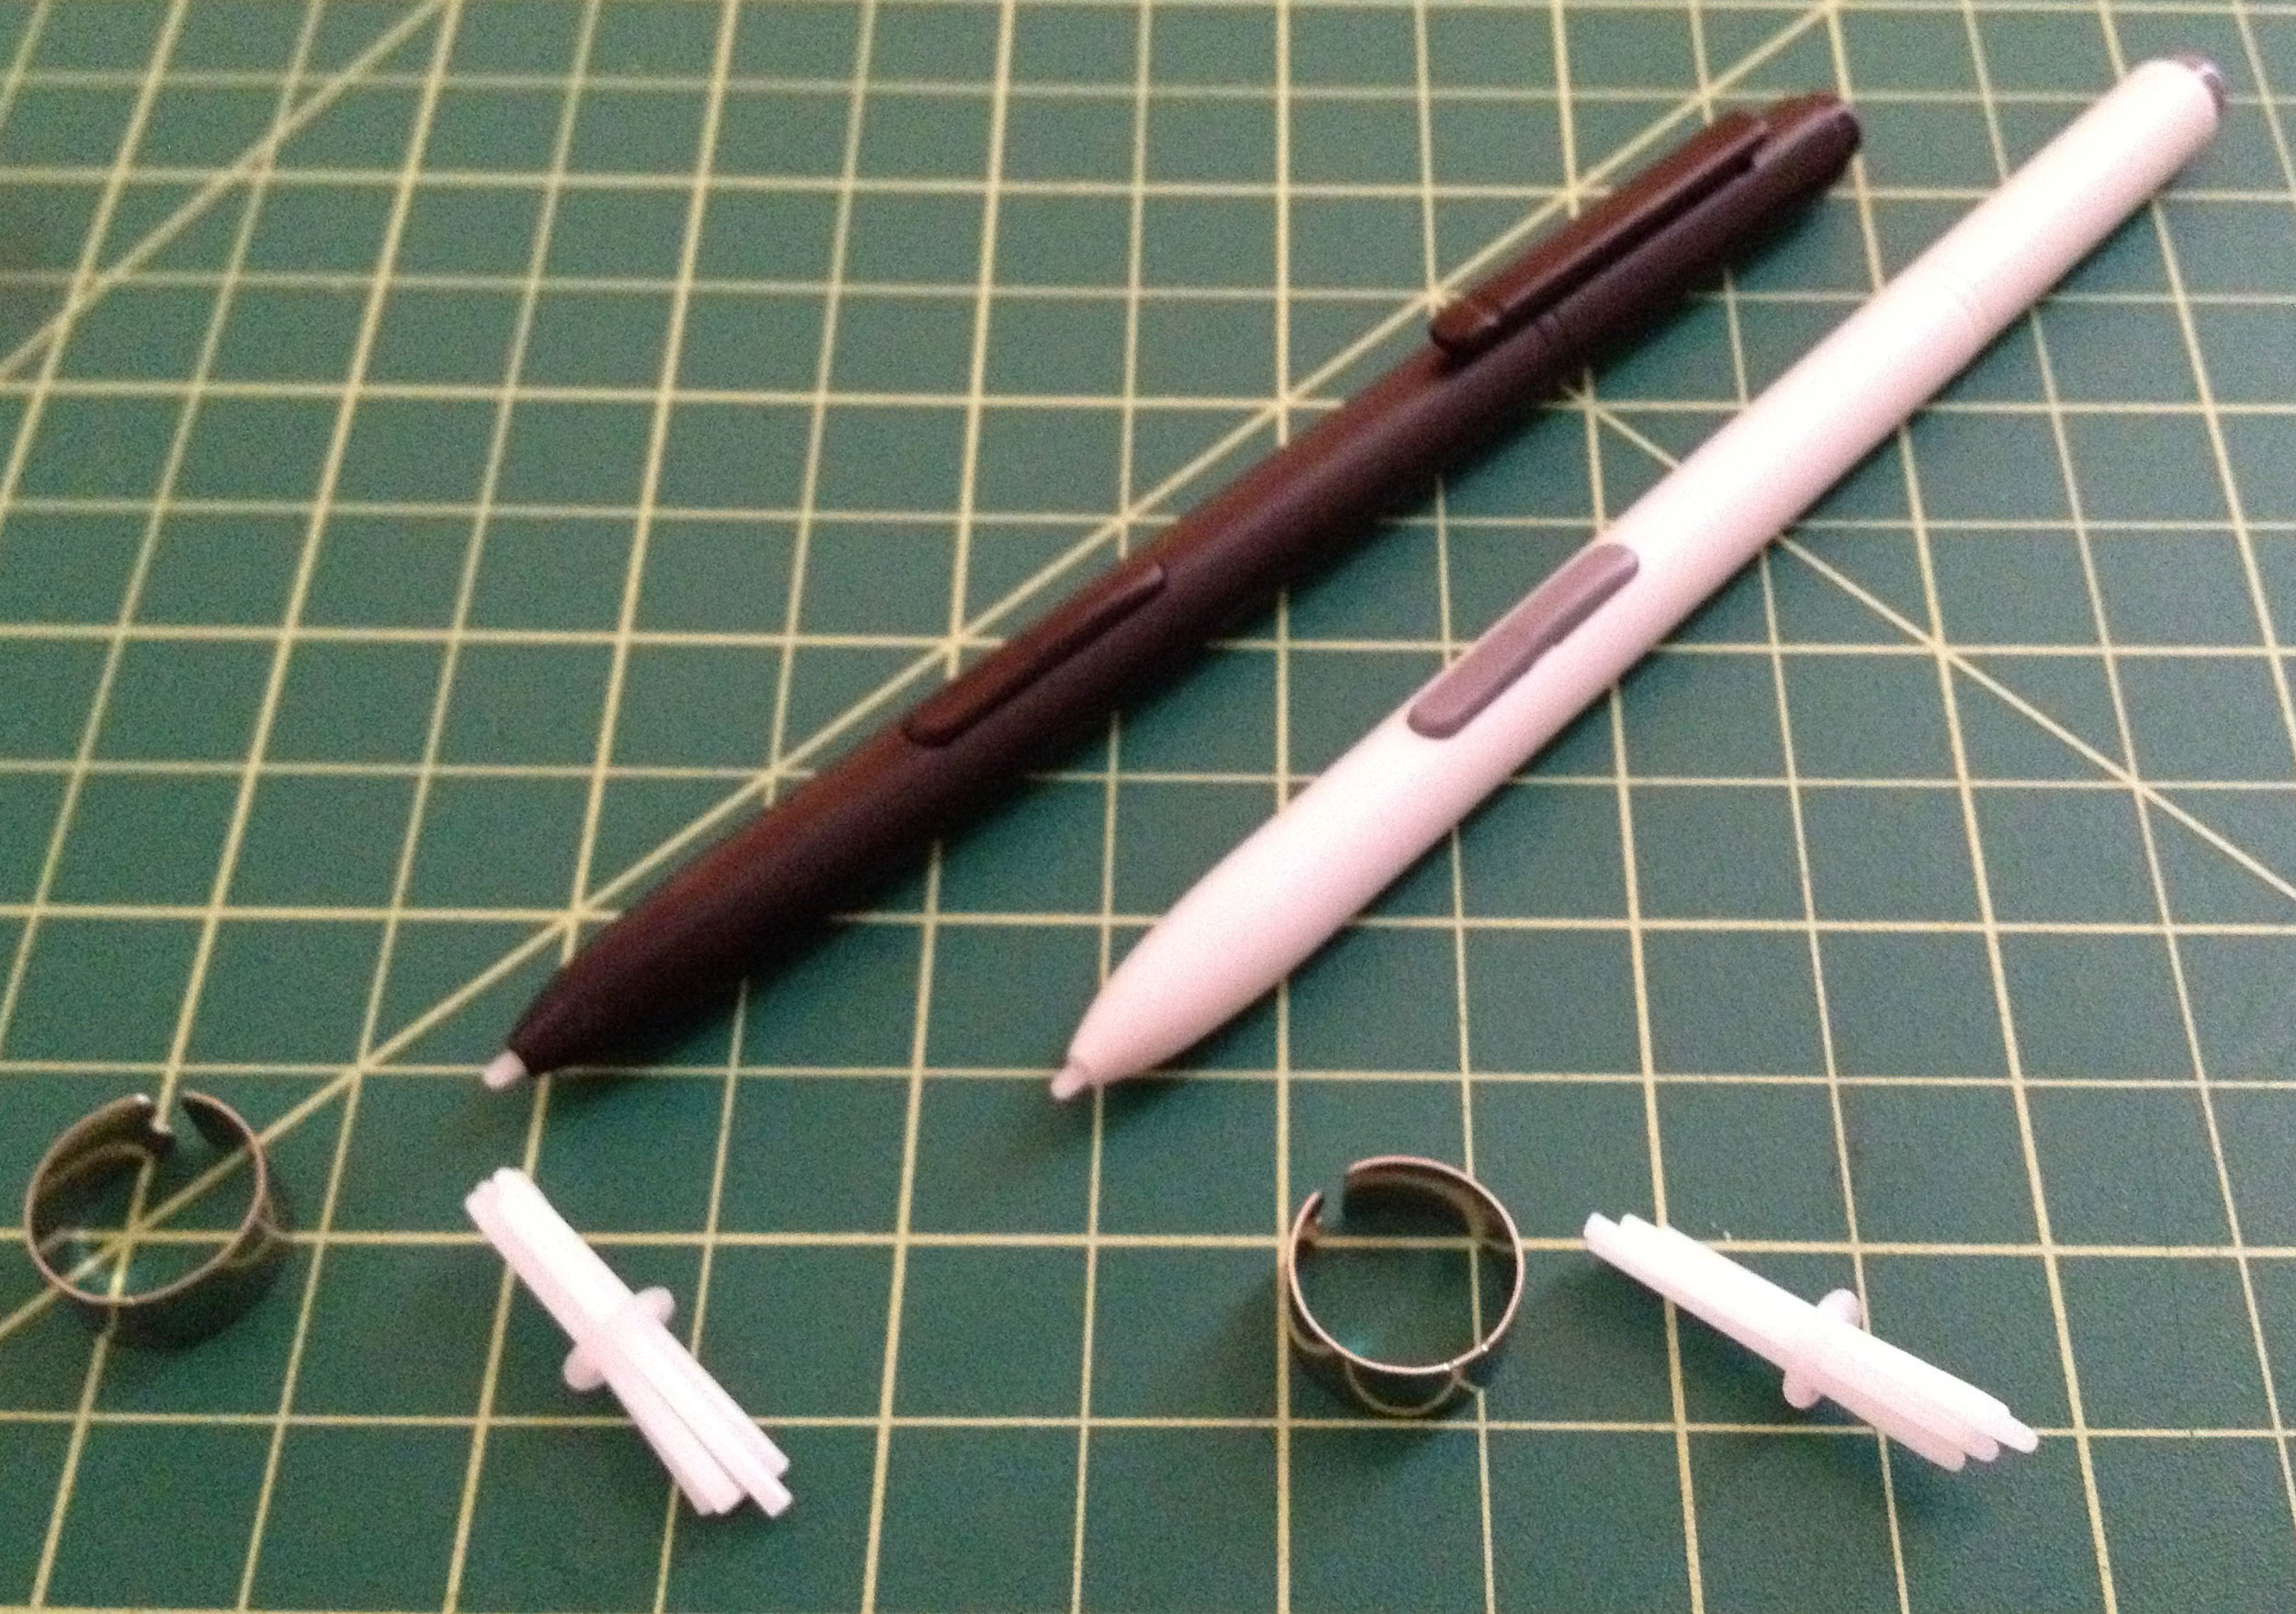 The Samsung Digitizer Pen/Stylet (left) and the Wacom Penabled Tablet PC Eraser Pen each ship with five nibs and an extractor ring.